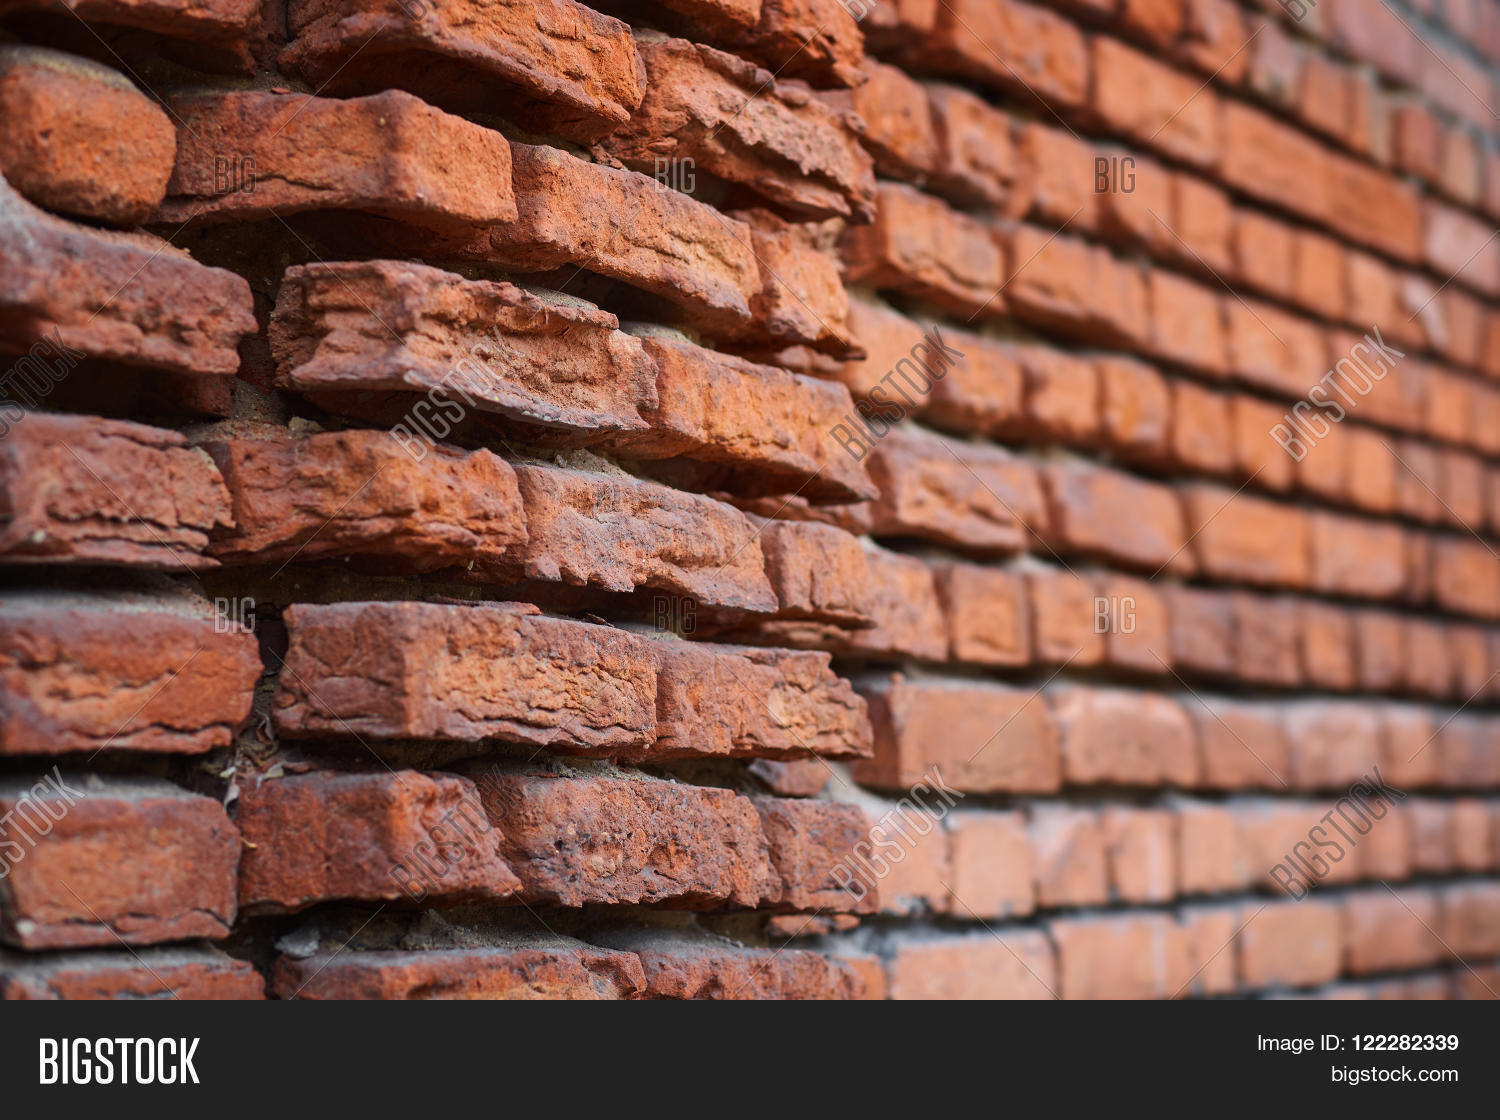 Antique Brick The Wall Of Old Building Vintage Architecture Breaking Bricks